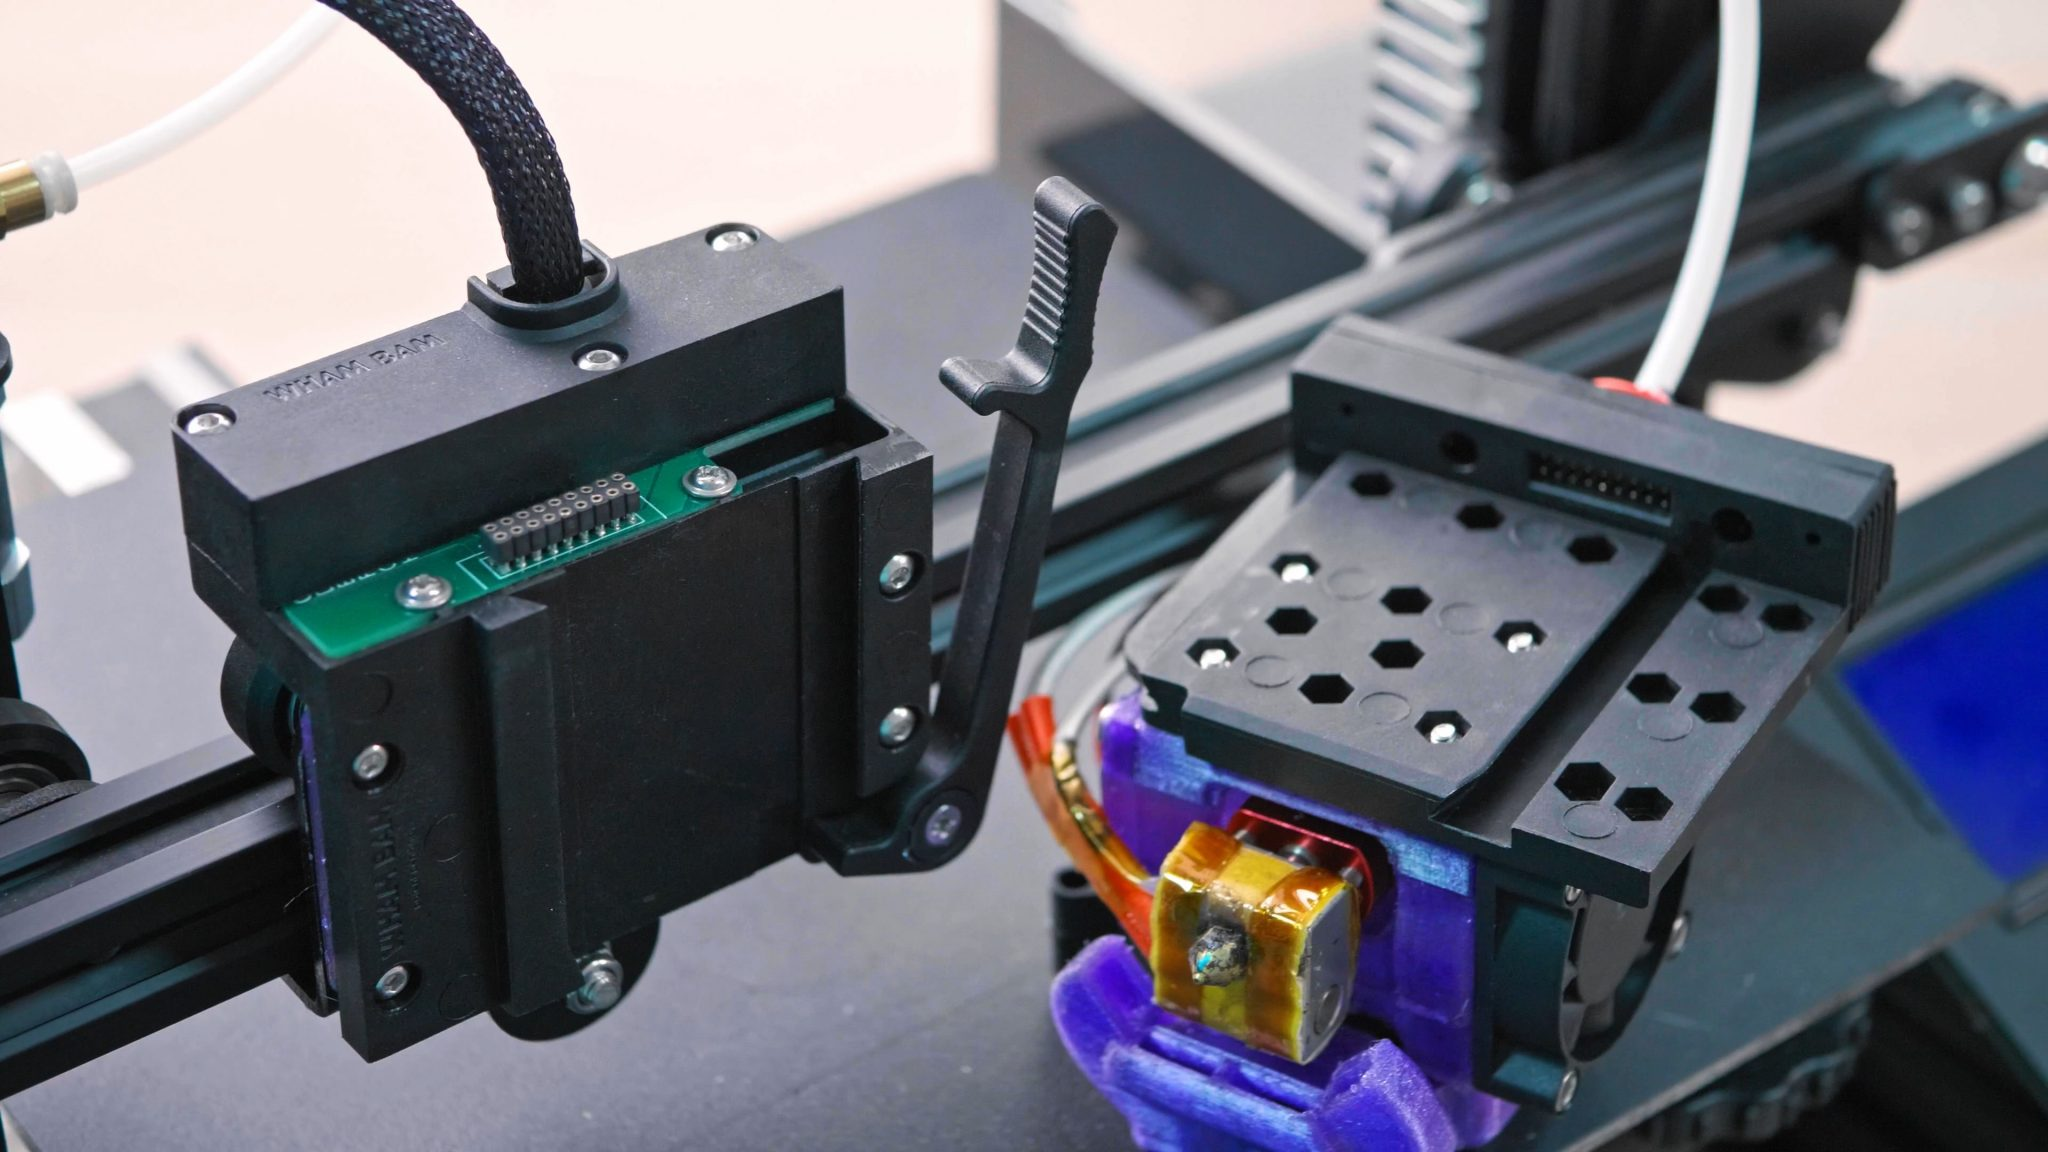 WhamBam Mutant: A Quick-Change Toolhead Upgrade for any 3D Printer! (NOT on Kickstarter)